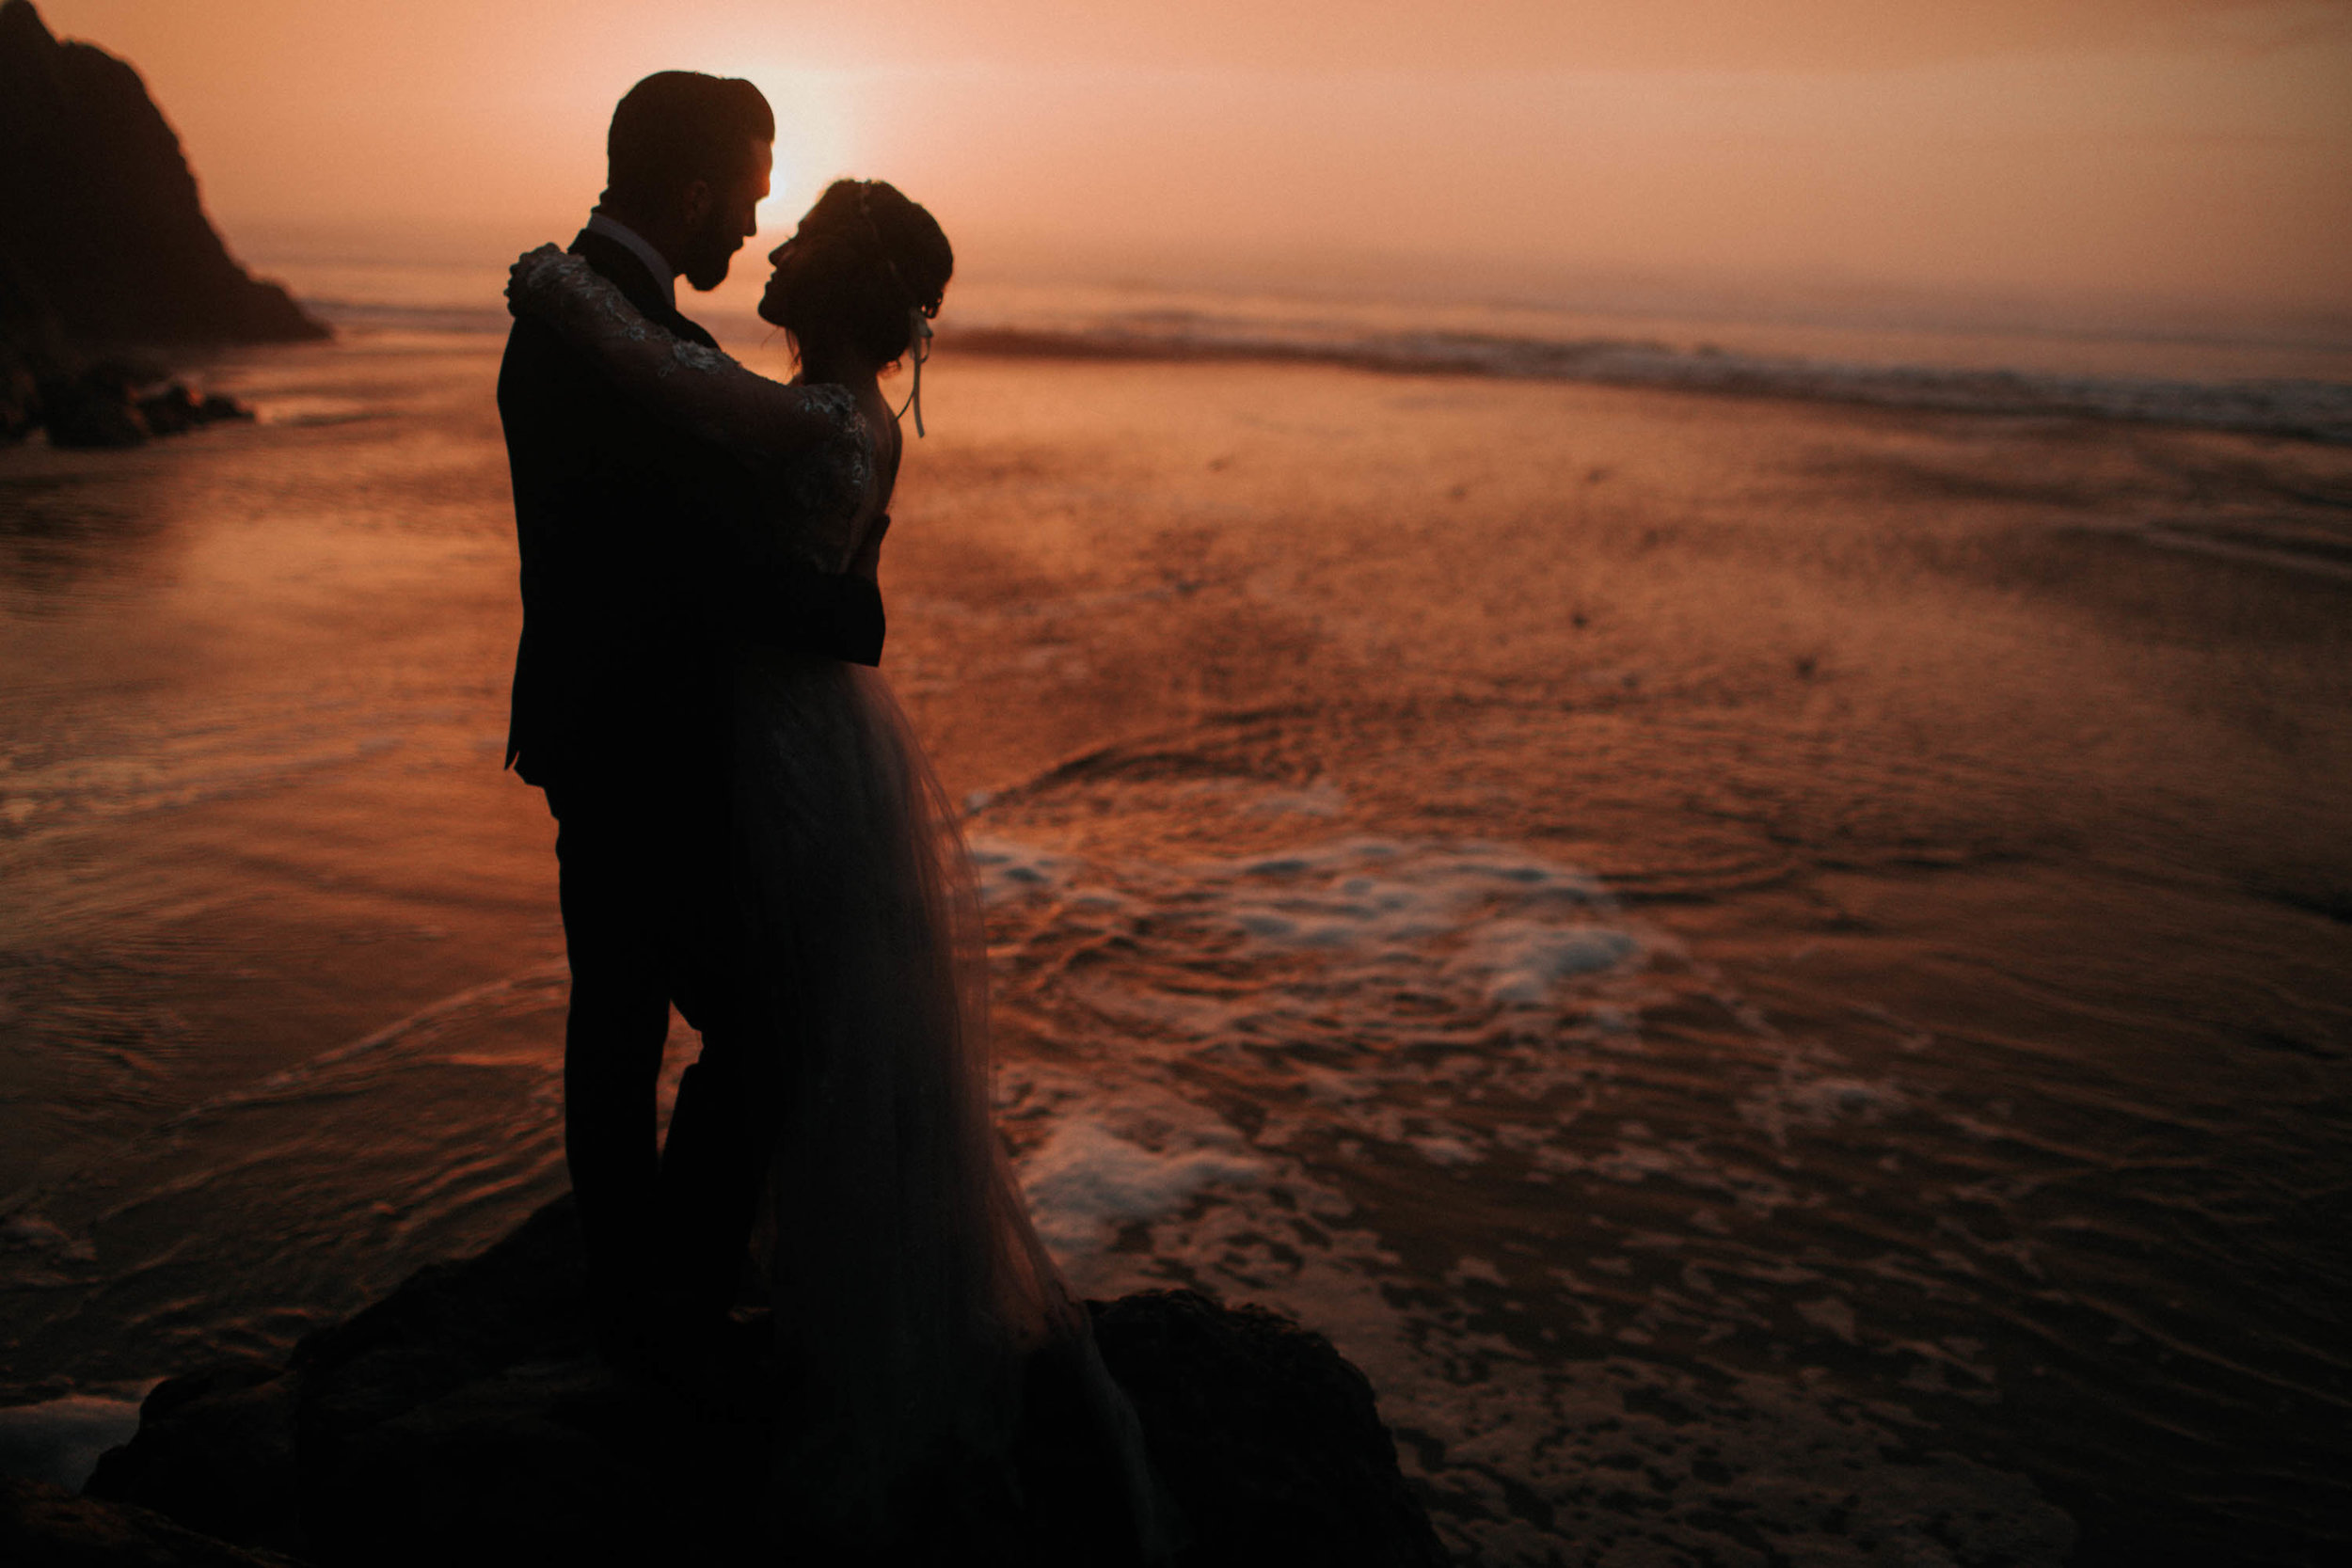 canonbeach_elopment_weddingphotographer-117.jpg